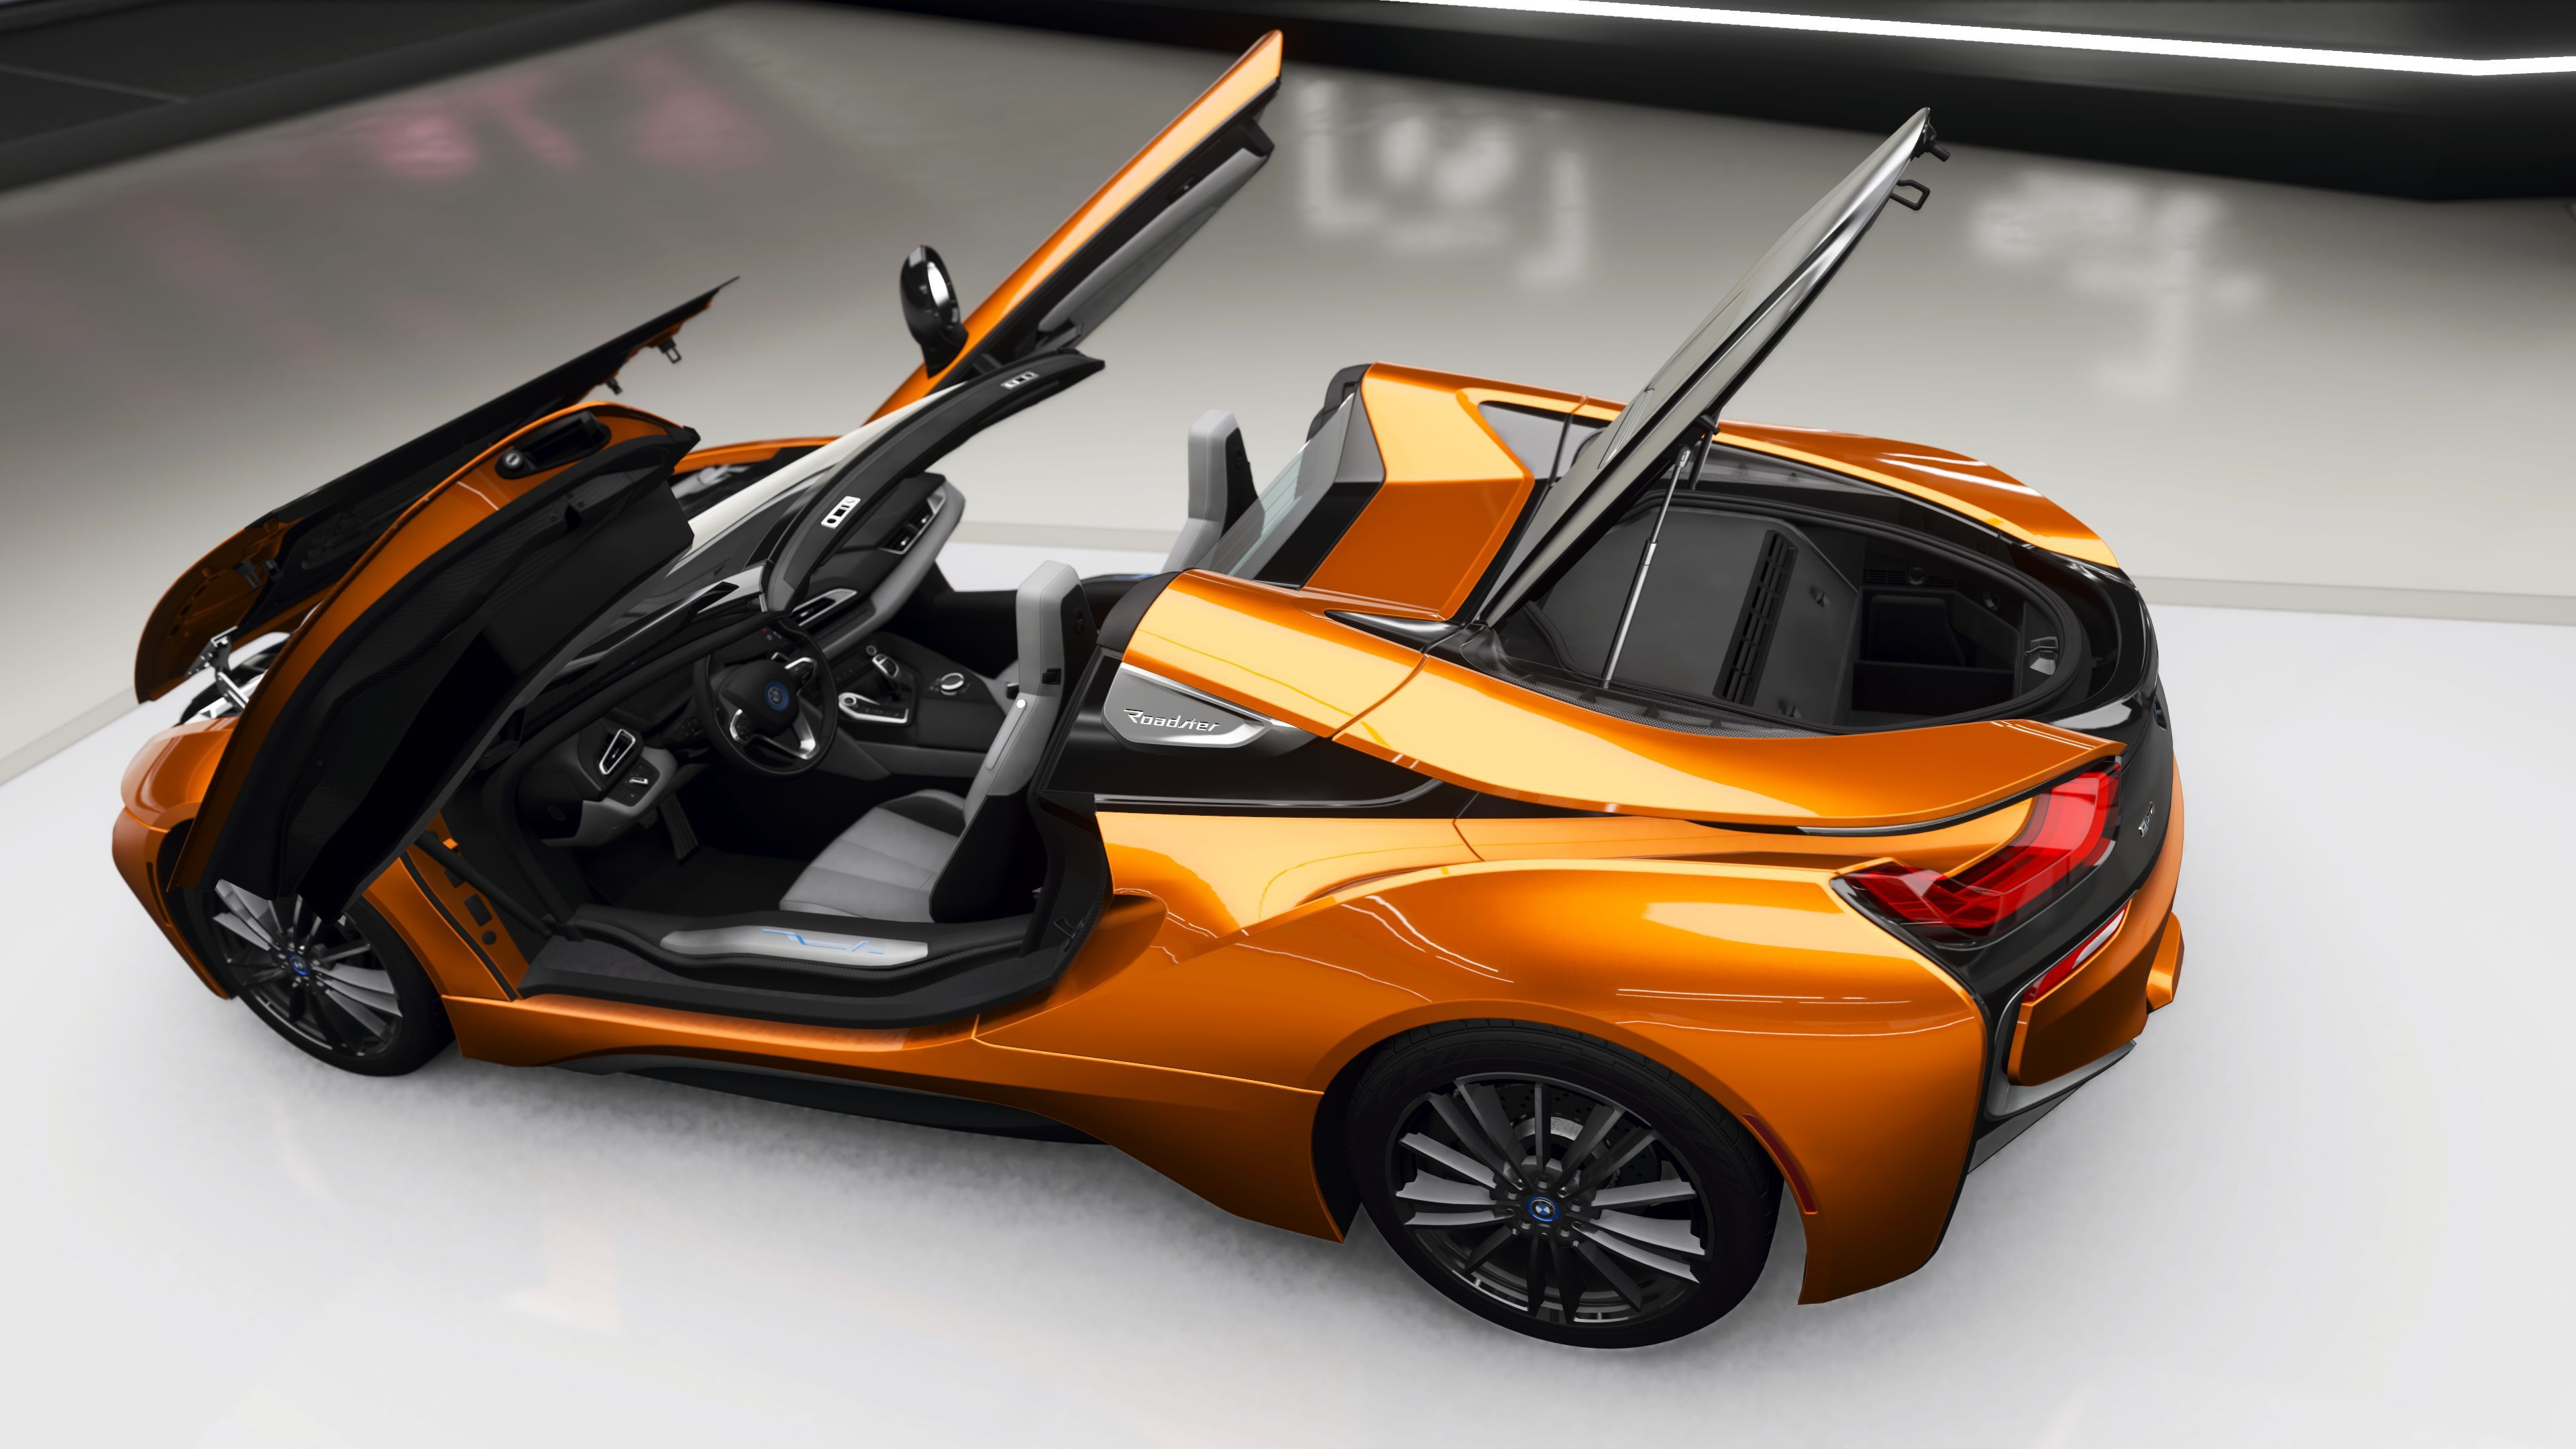 BMW i8 Roadster (I15) mod specifications